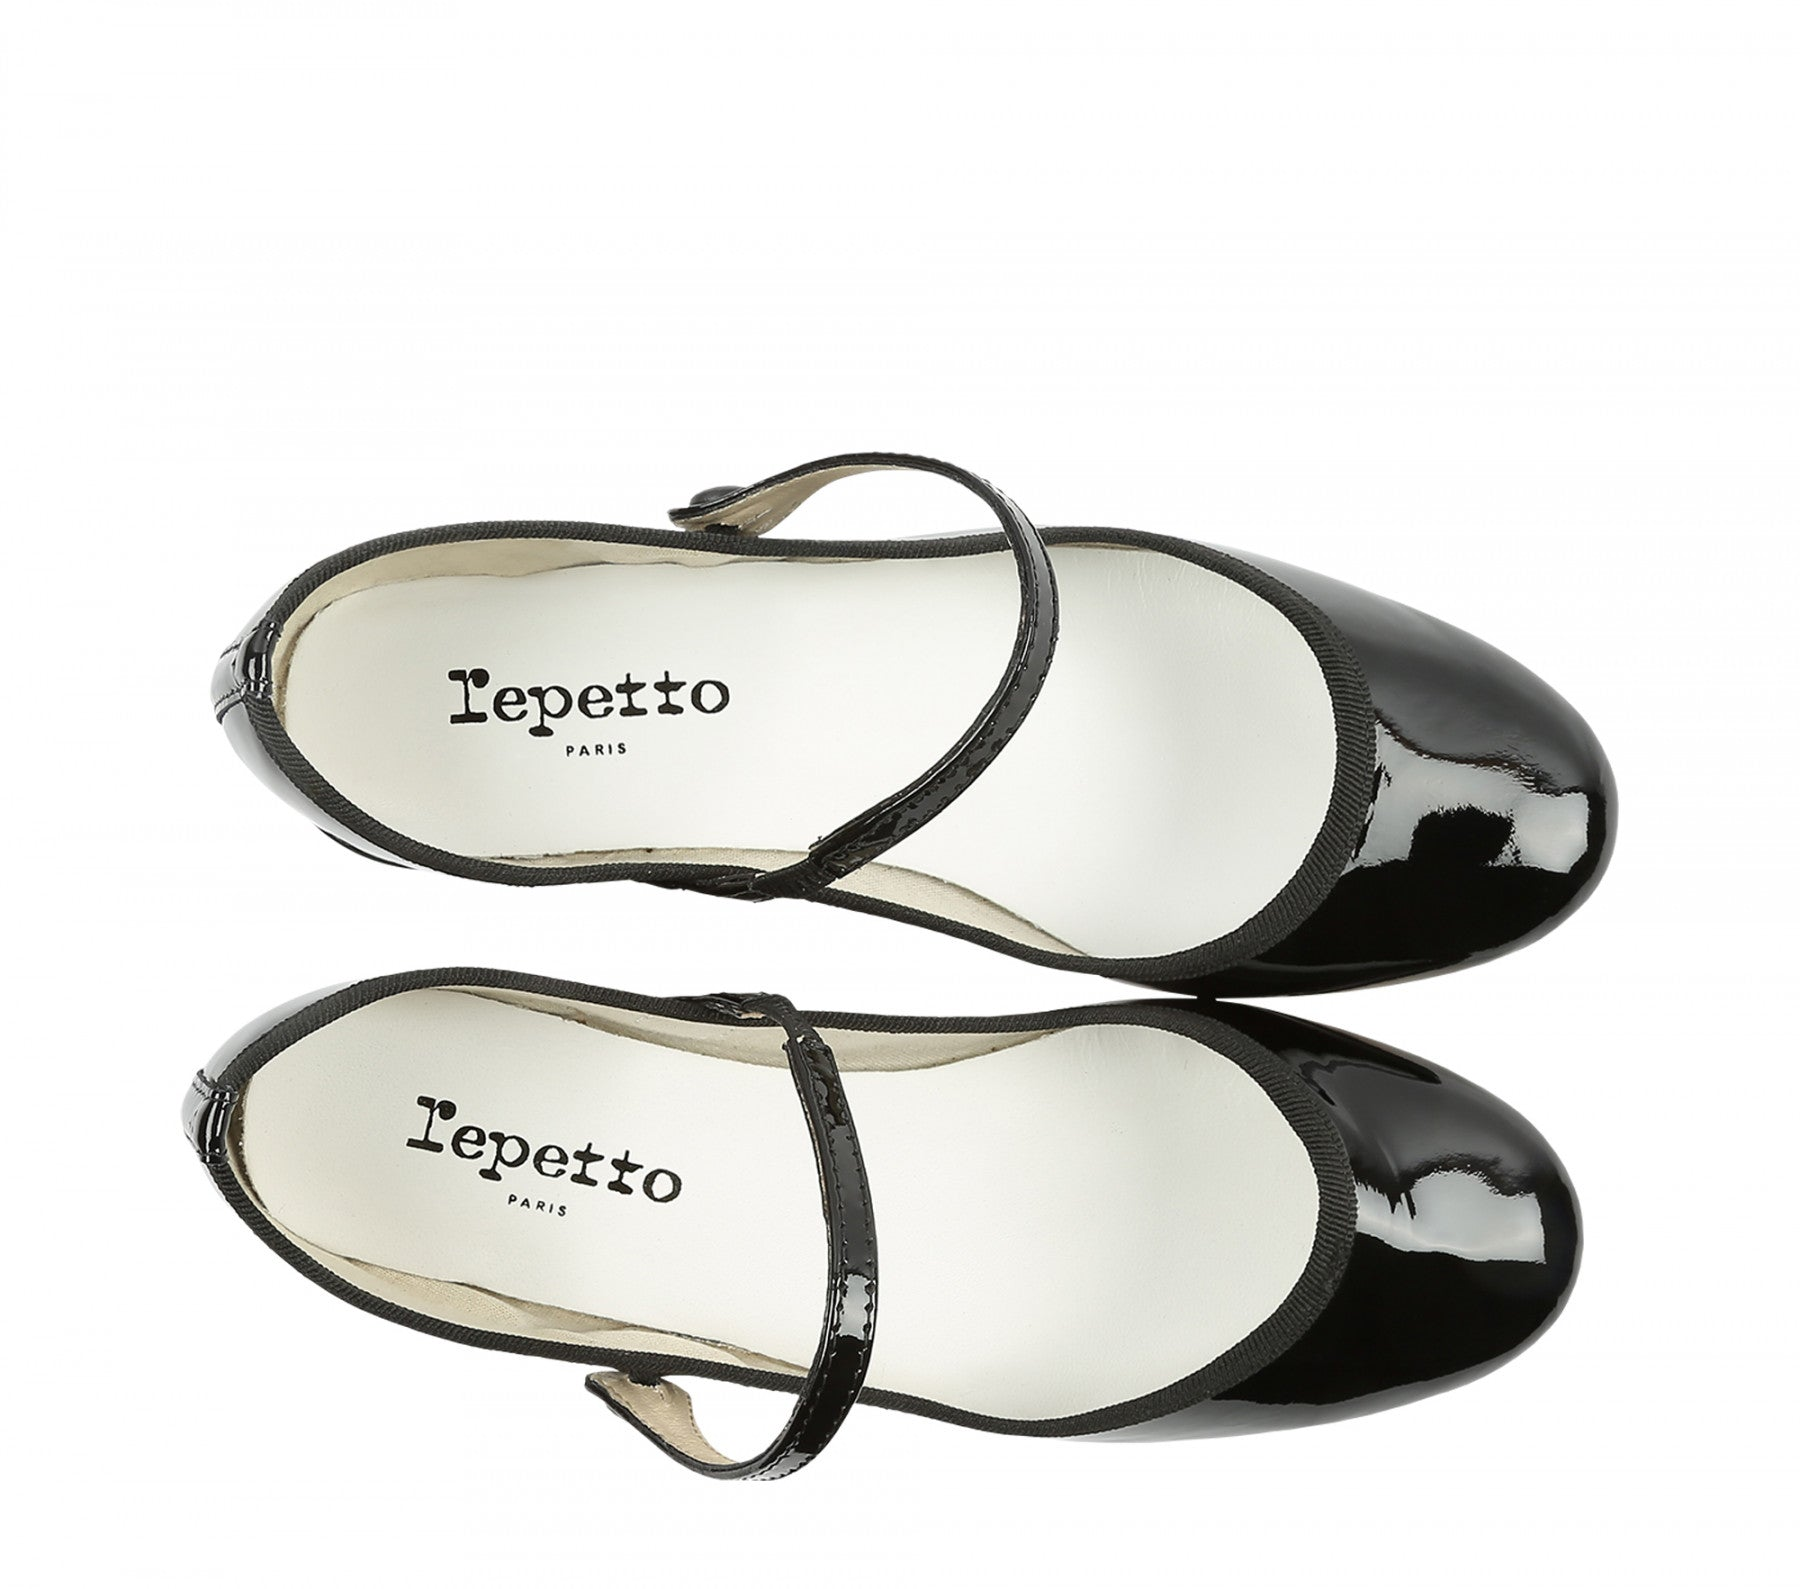 Repetto Paris - Rose Mary Jane Black Patent Heel SPECIAL PRE-ORDER PRICE